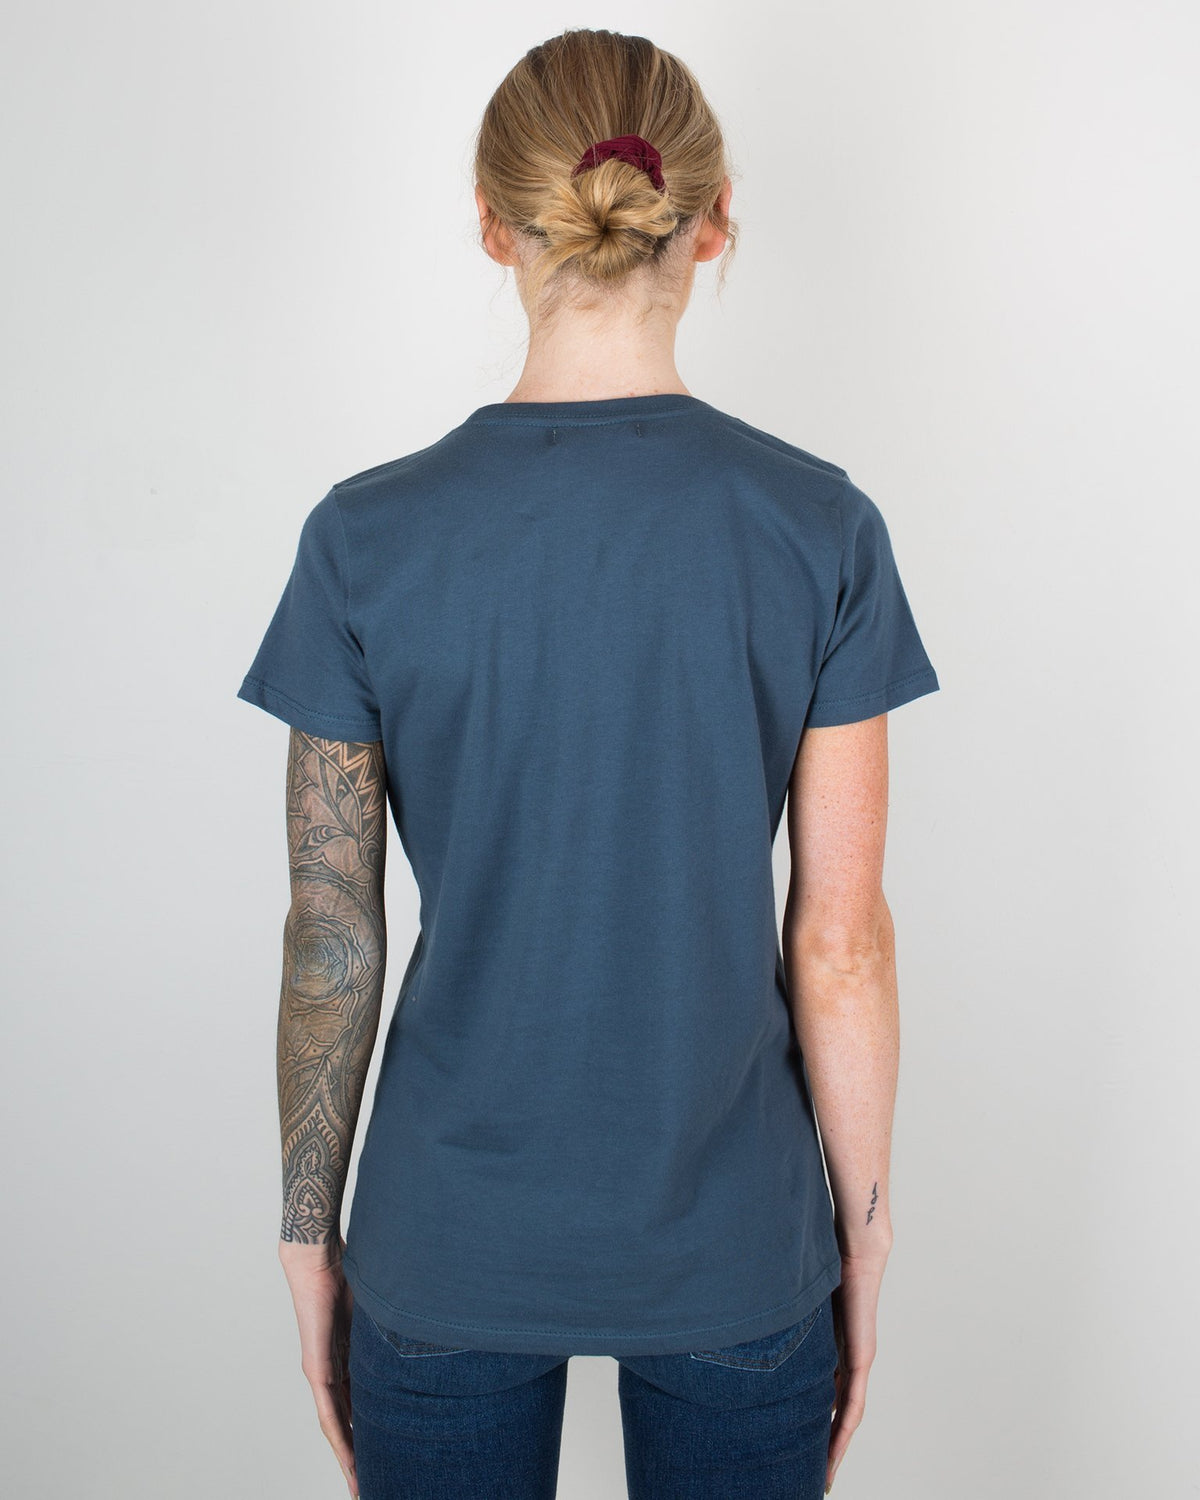 Milo in Maine Clothing Navy - Maine / XS Short Sleeve Crew In Dark Blue